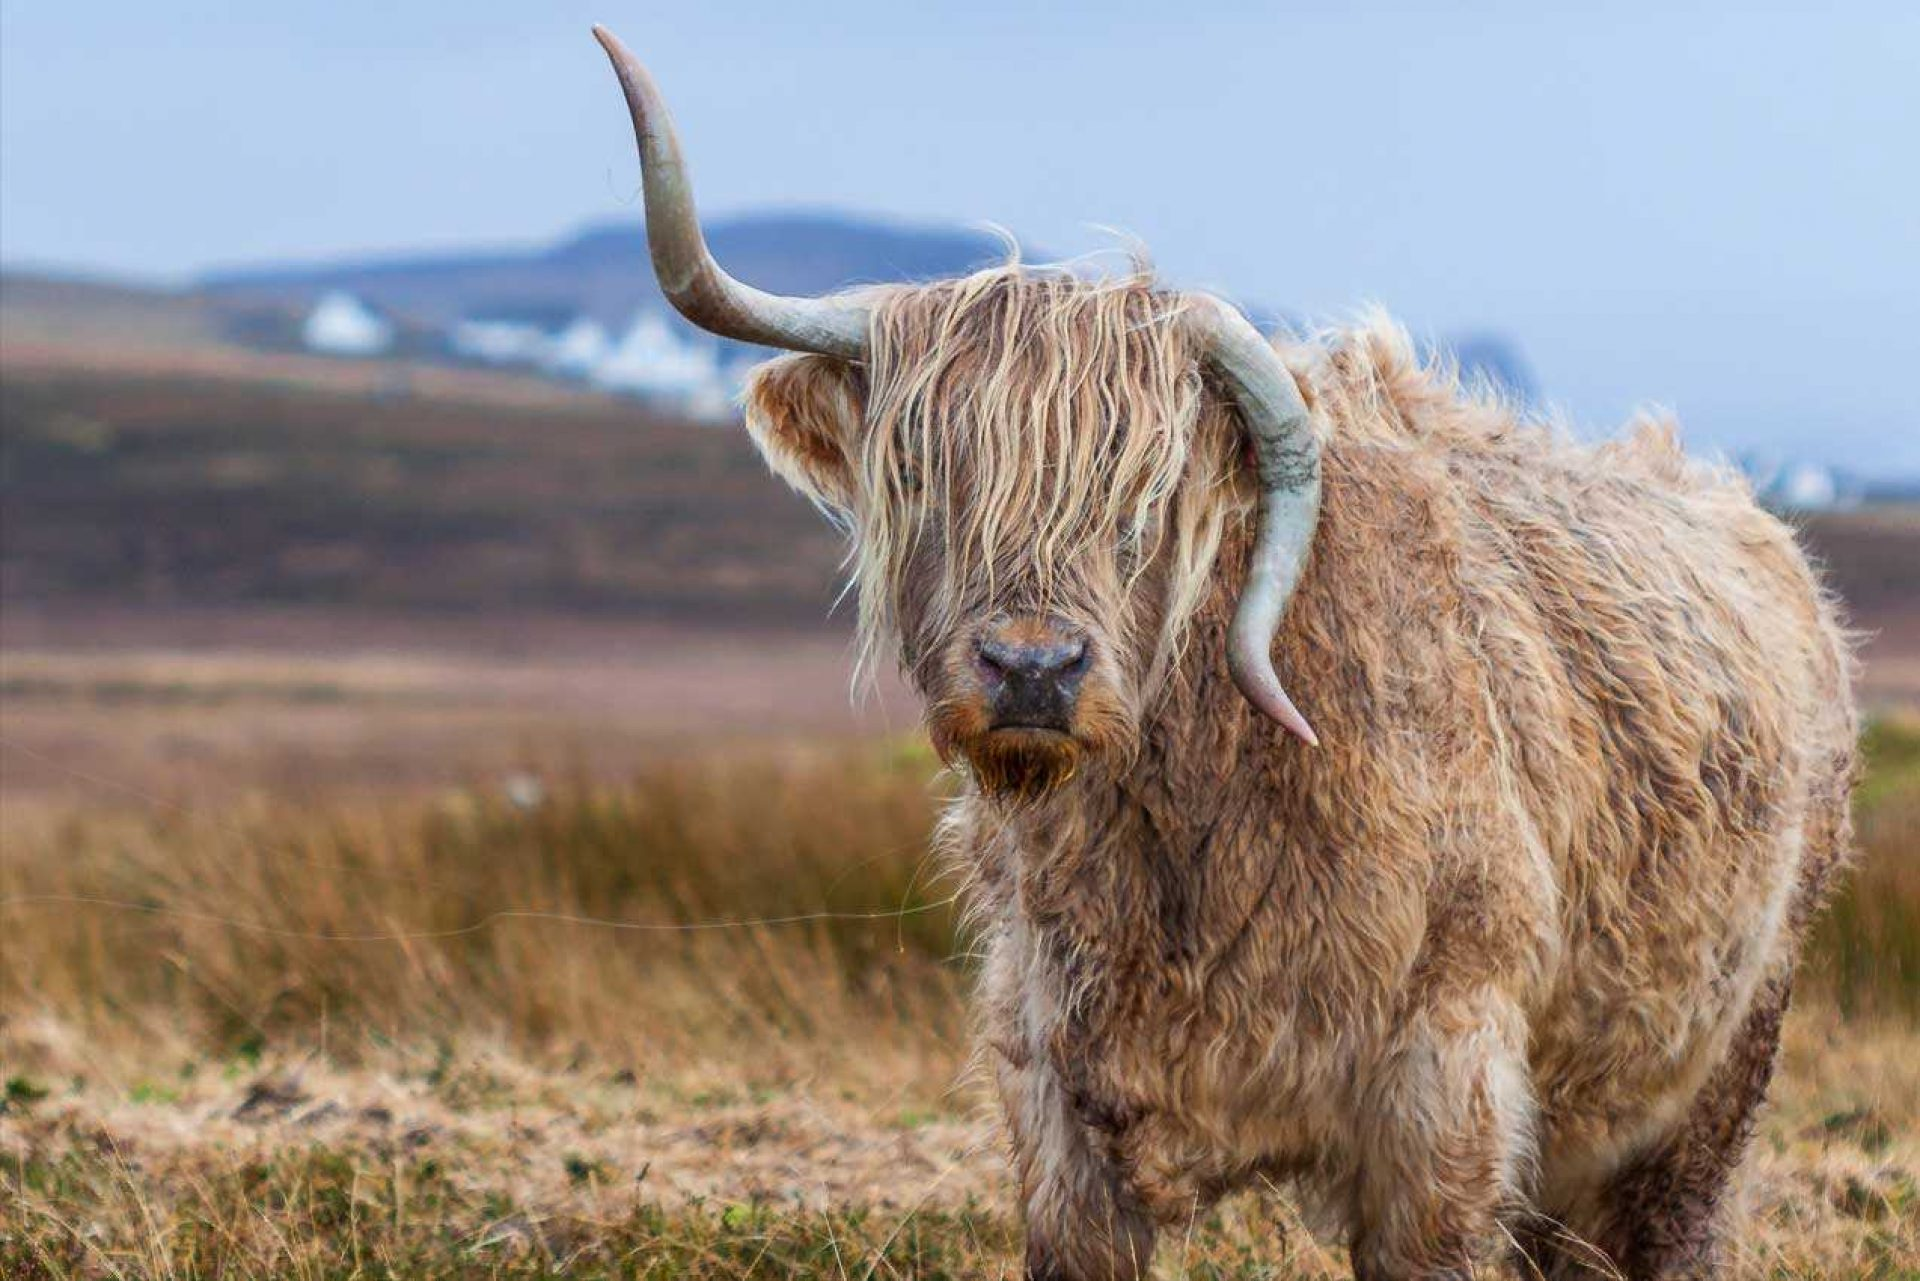 Horned long hair cow looking at camera